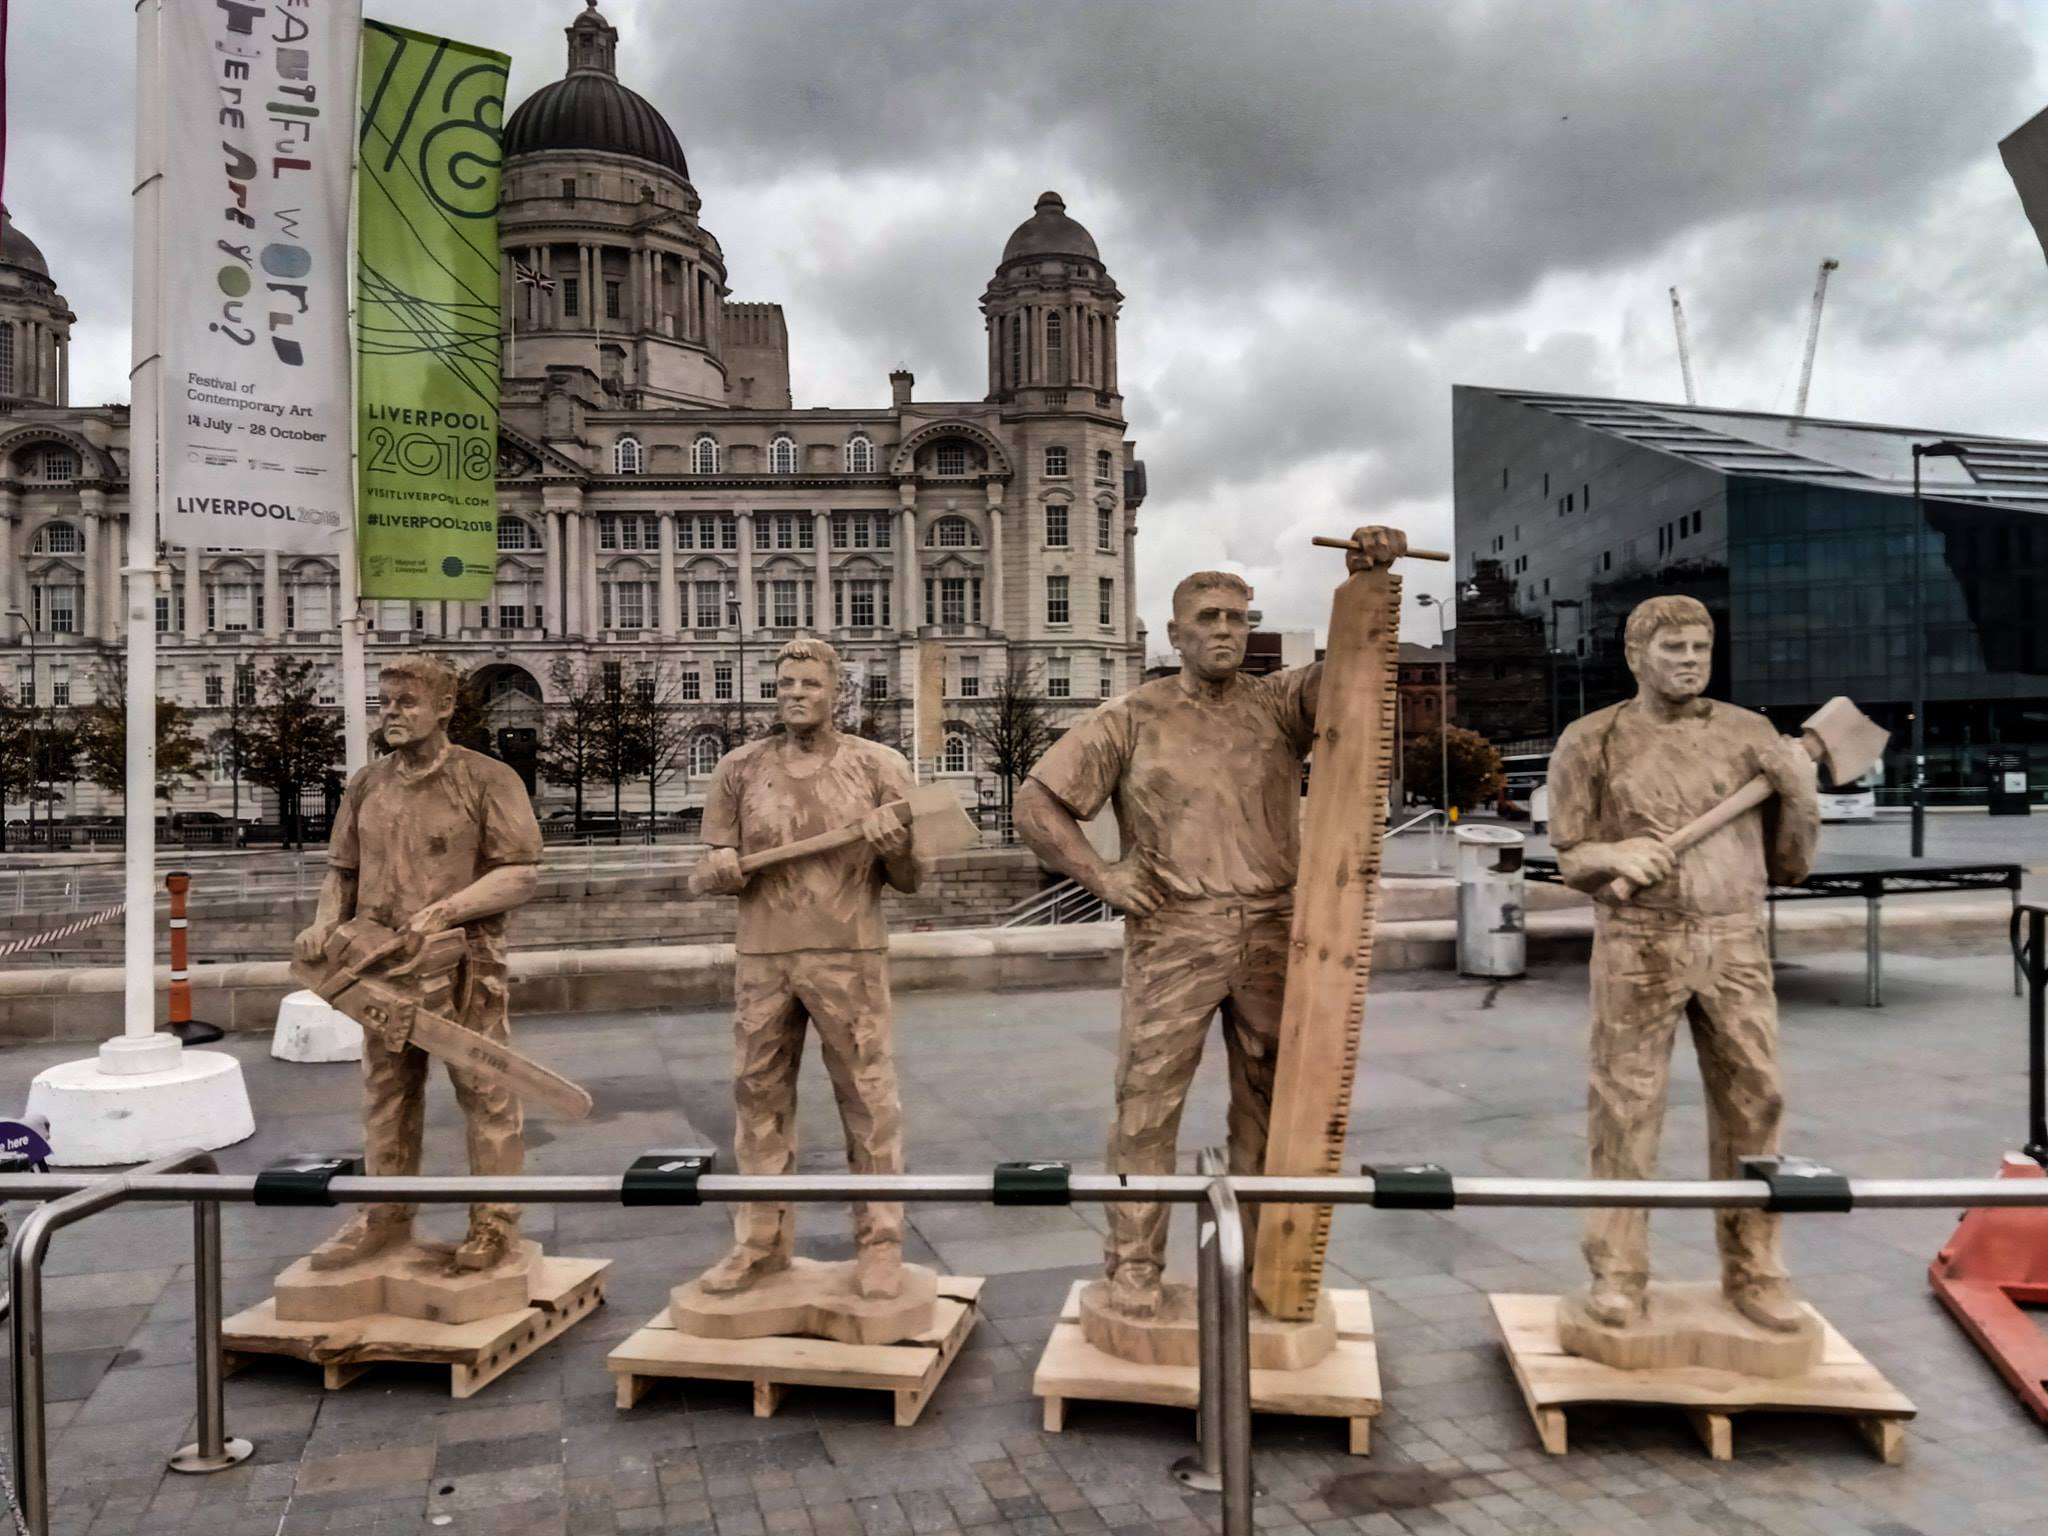 life-sized wooden sculptures of four timbersports athletes stand in front of a large building